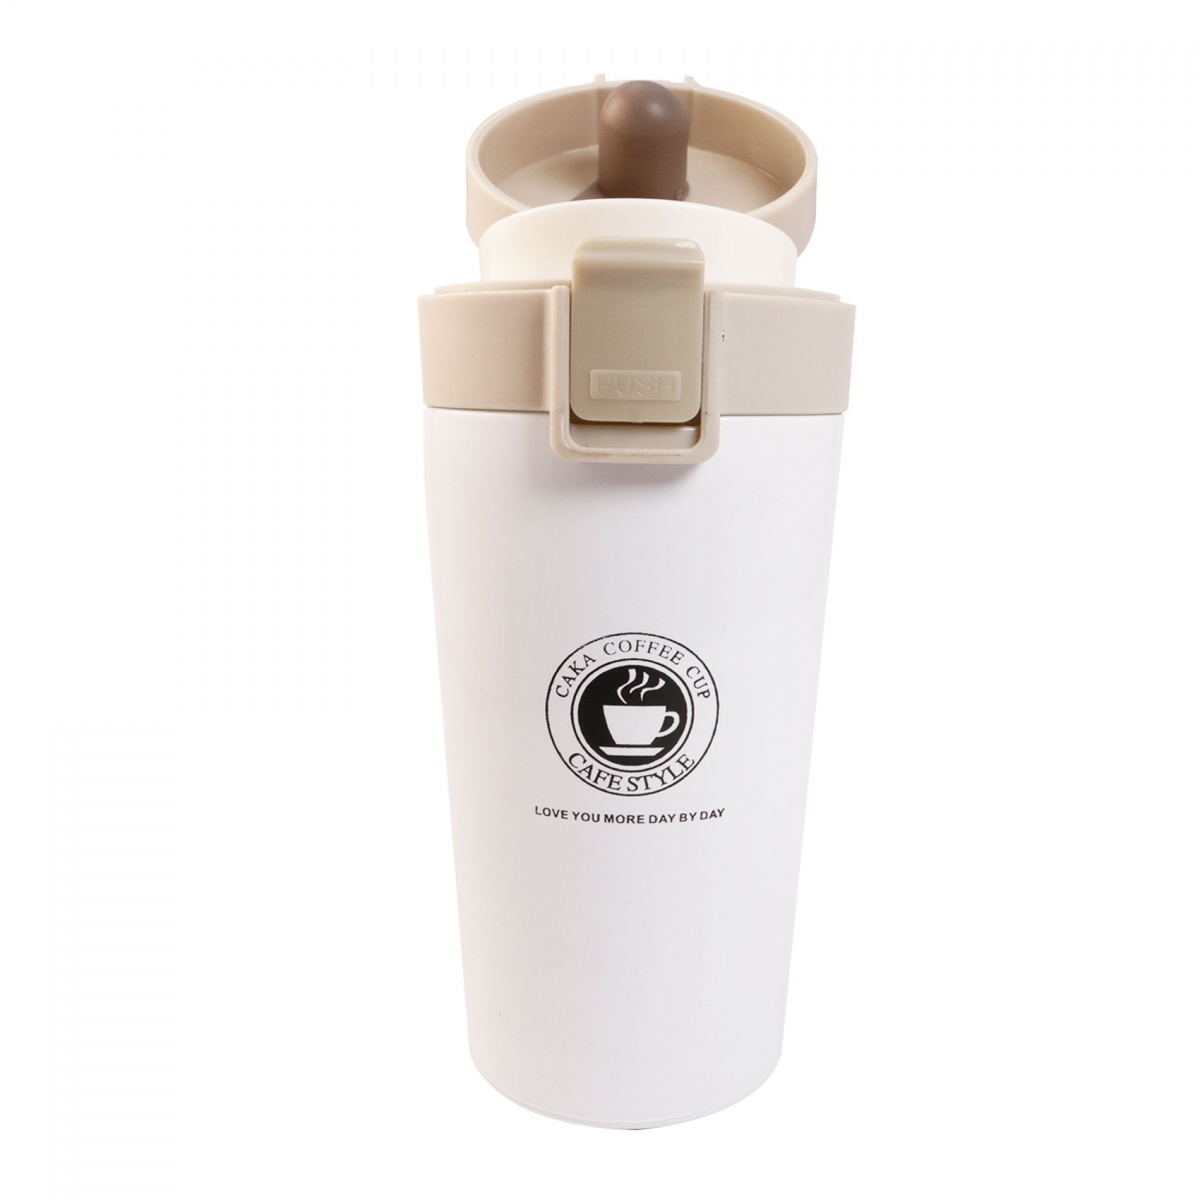 Caka 380ml Stainless Steel Vacuum Flask Coffee Bottle Cup - White